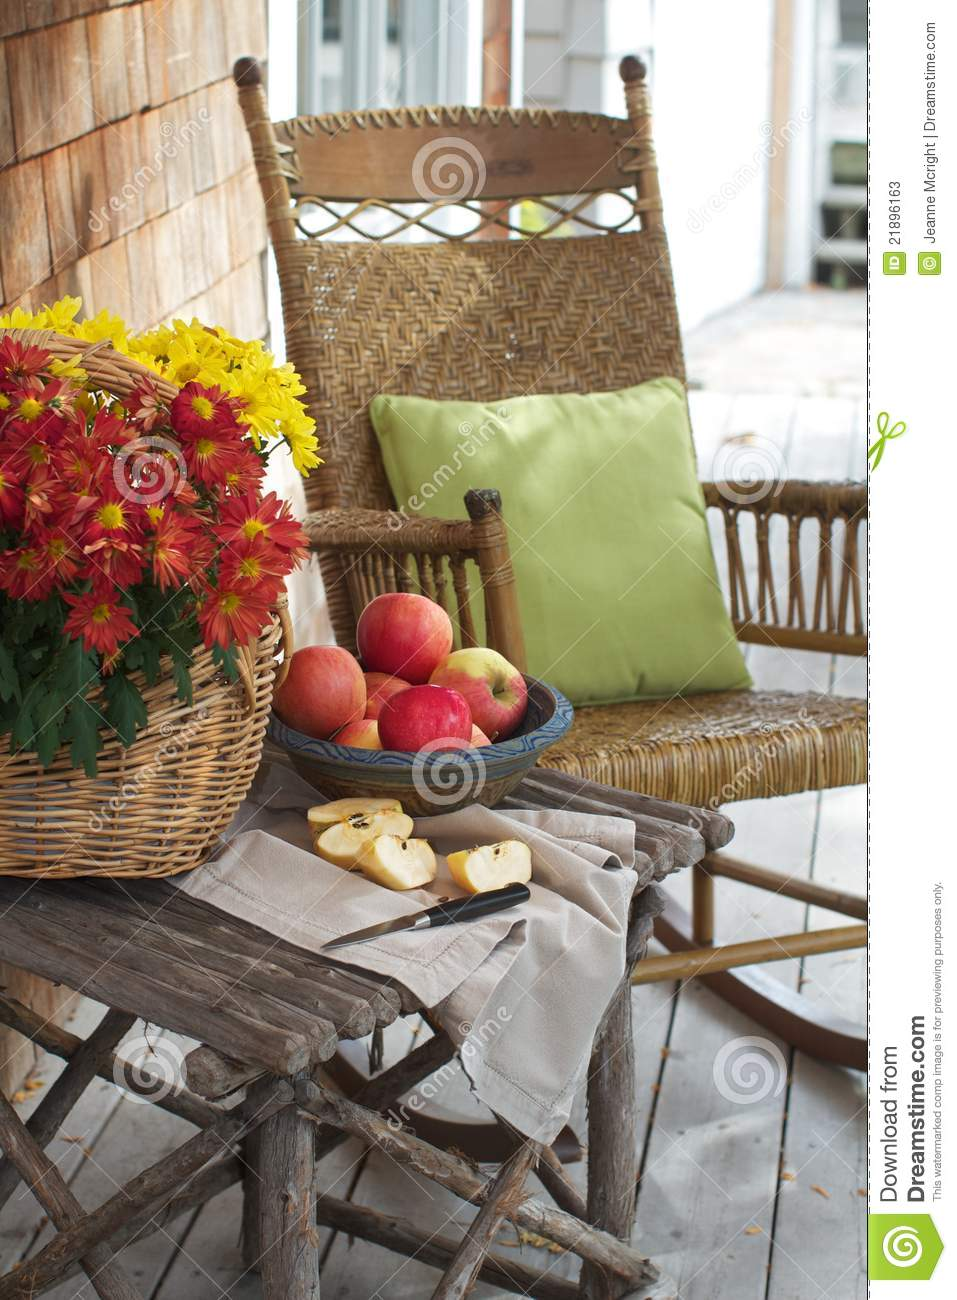 Awe Inspiring Rustic Porch With Apples And Rocking Chair Stock Image Ibusinesslaw Wood Chair Design Ideas Ibusinesslaworg